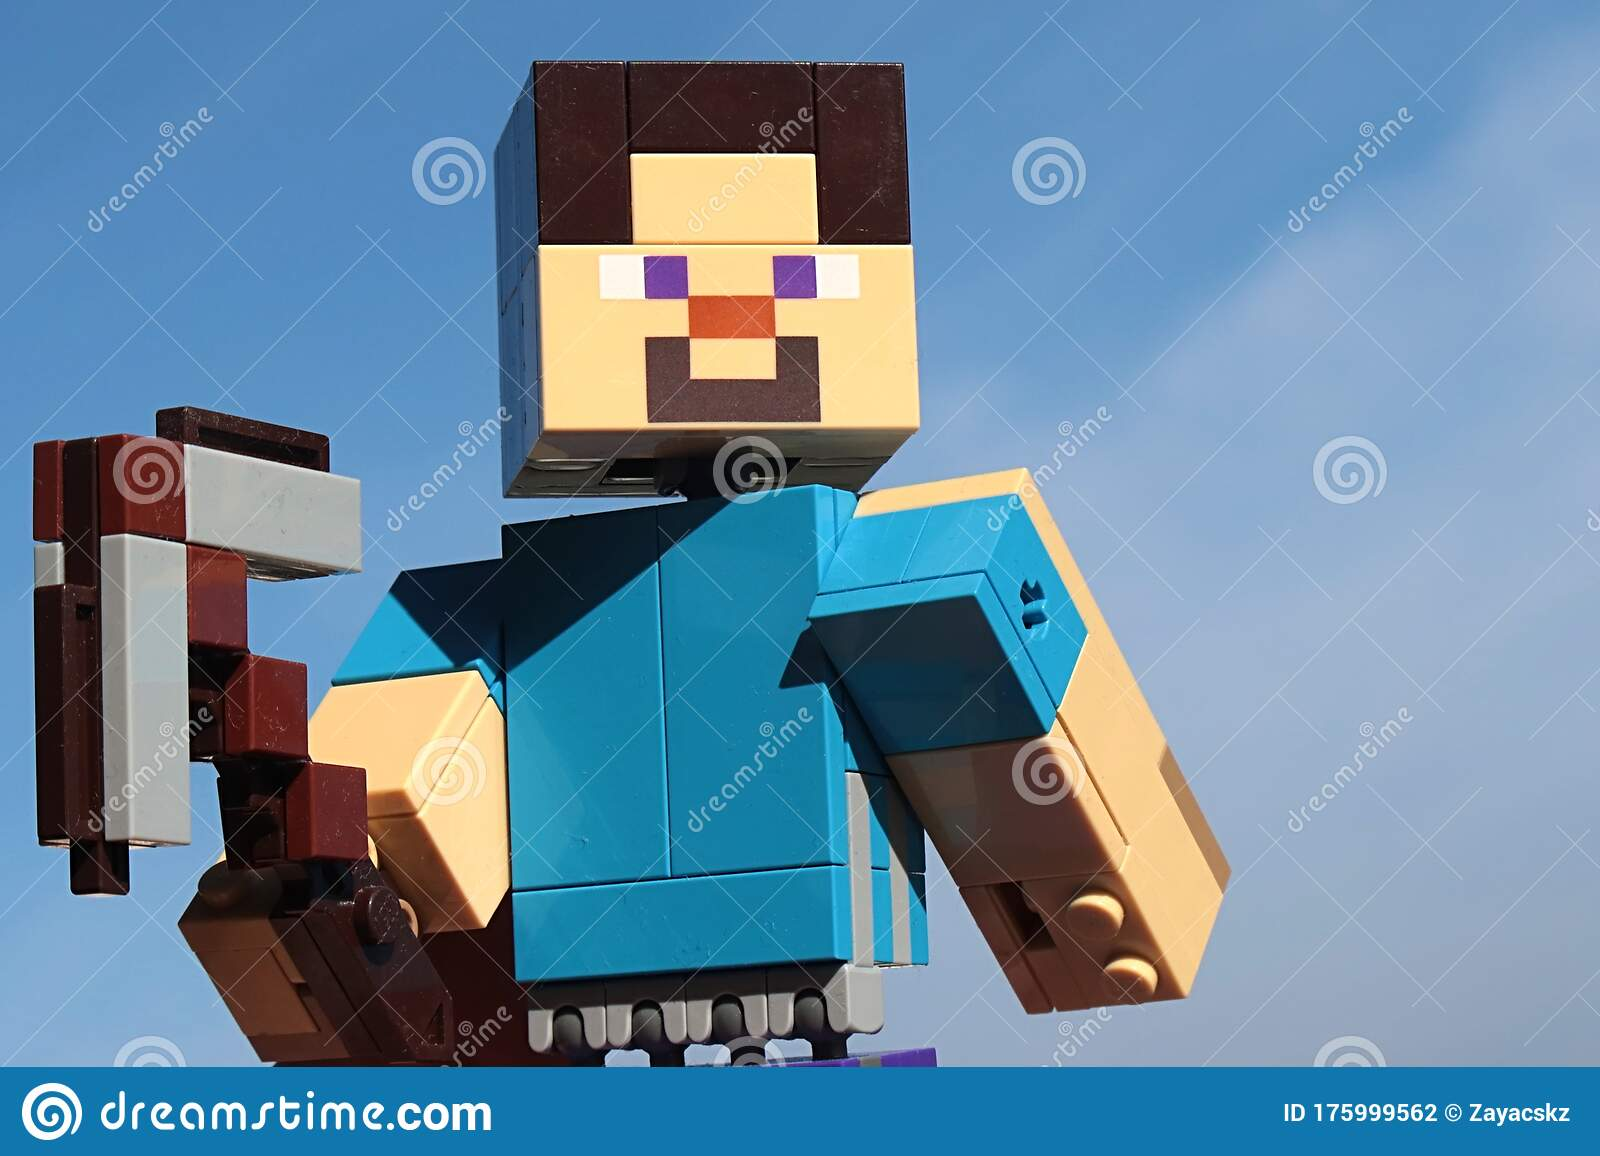 46 Minecraft Steve Photos Free Royalty Free Stock Photos From Dreamstime